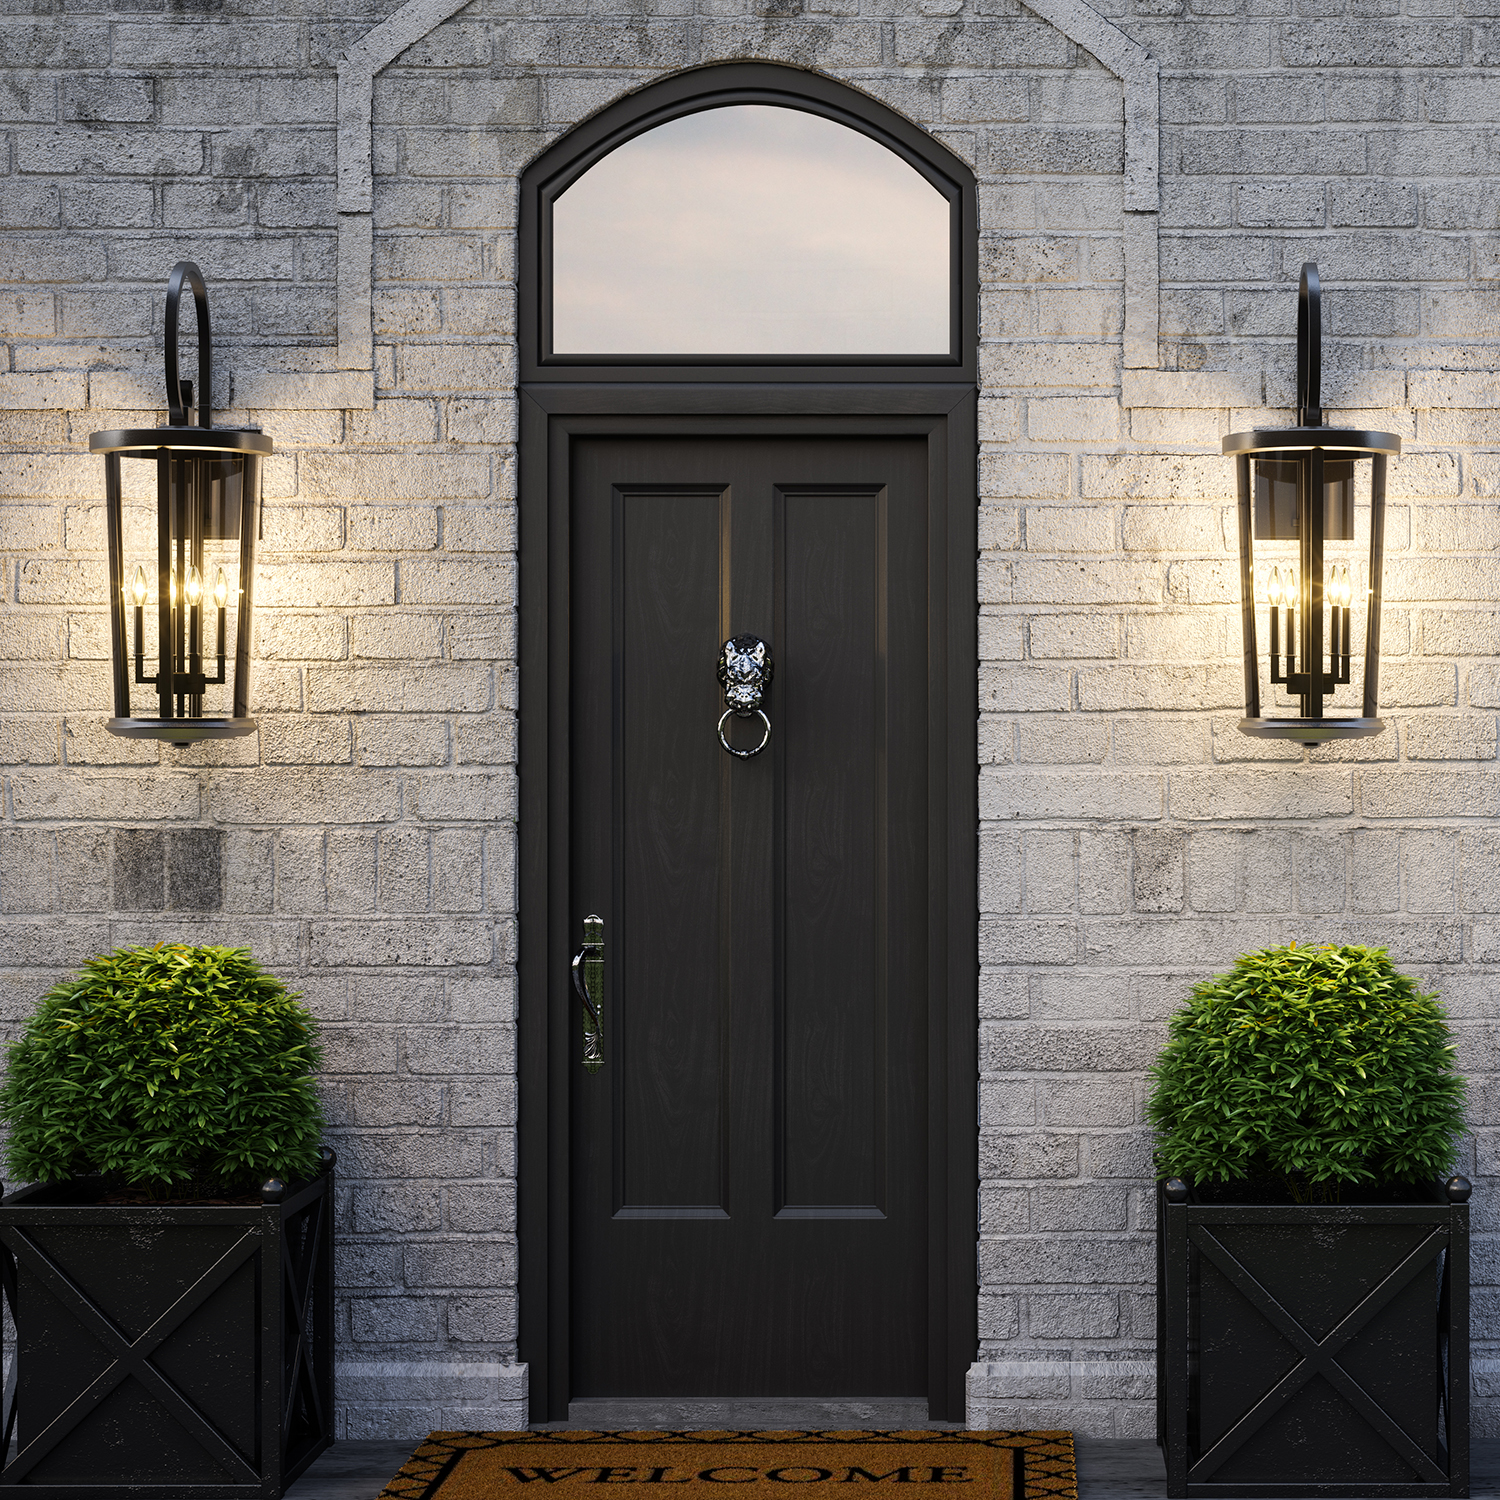 Ellsworth Lanterns lit and hanging beside the front door of a contemporary brick home